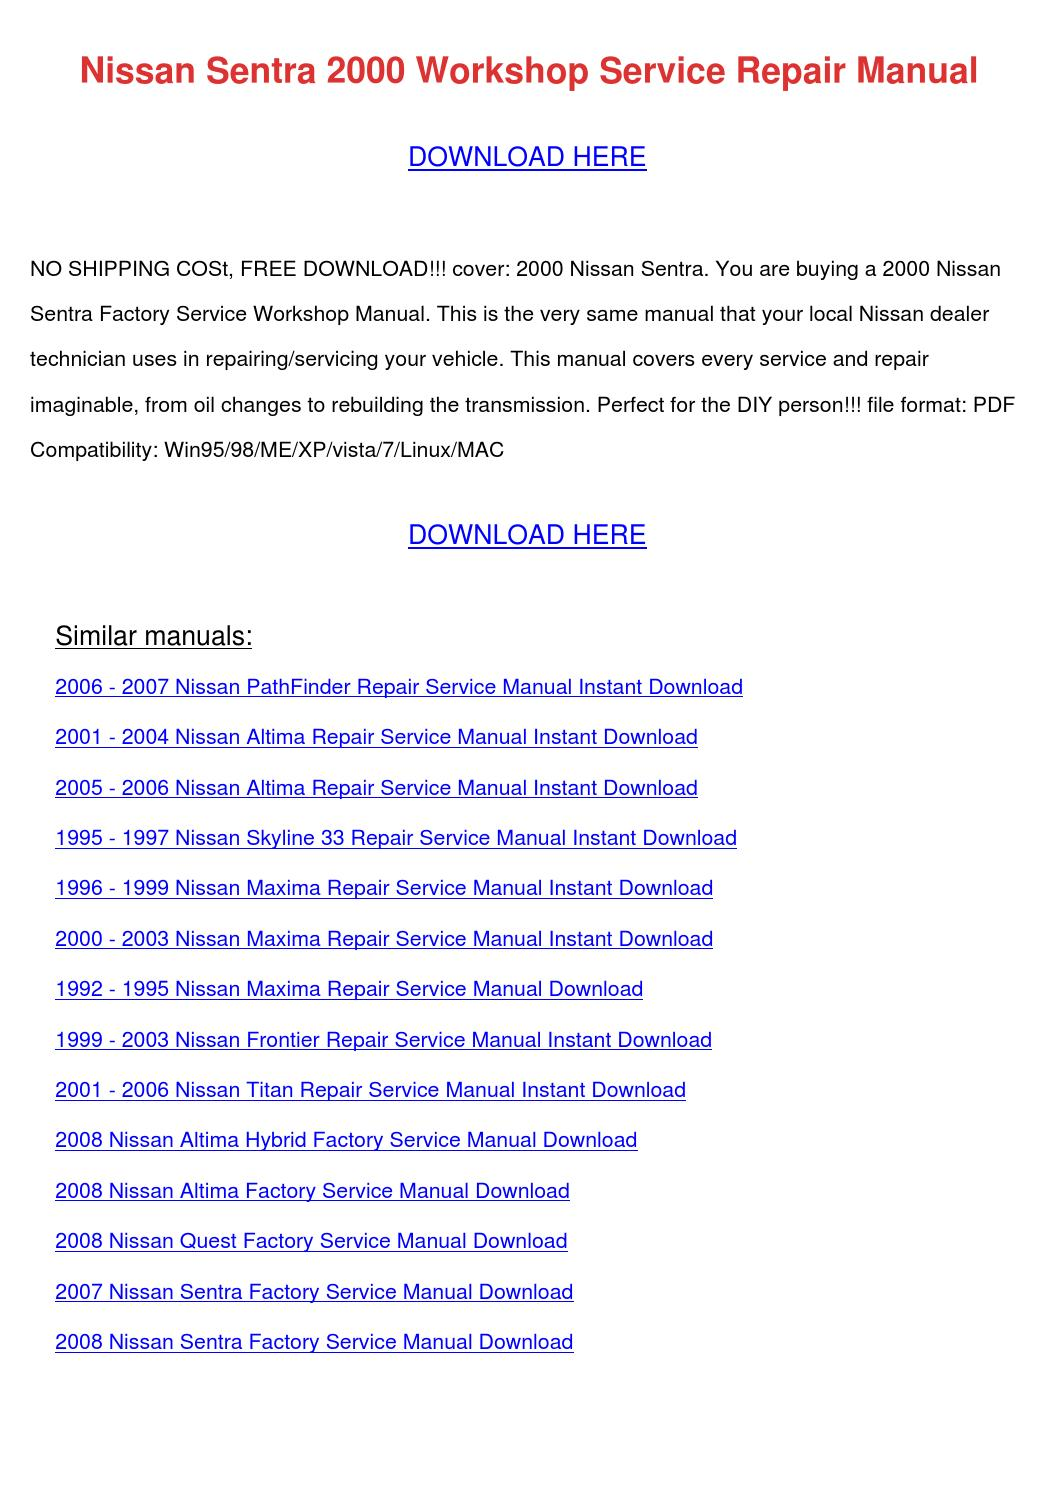 nissan sentra 2000 workshop service repair ma by honggilmer issuu rh issuu  com 1996 Nissan Maxima Problems 1997 Nissan Maxima Service Manual